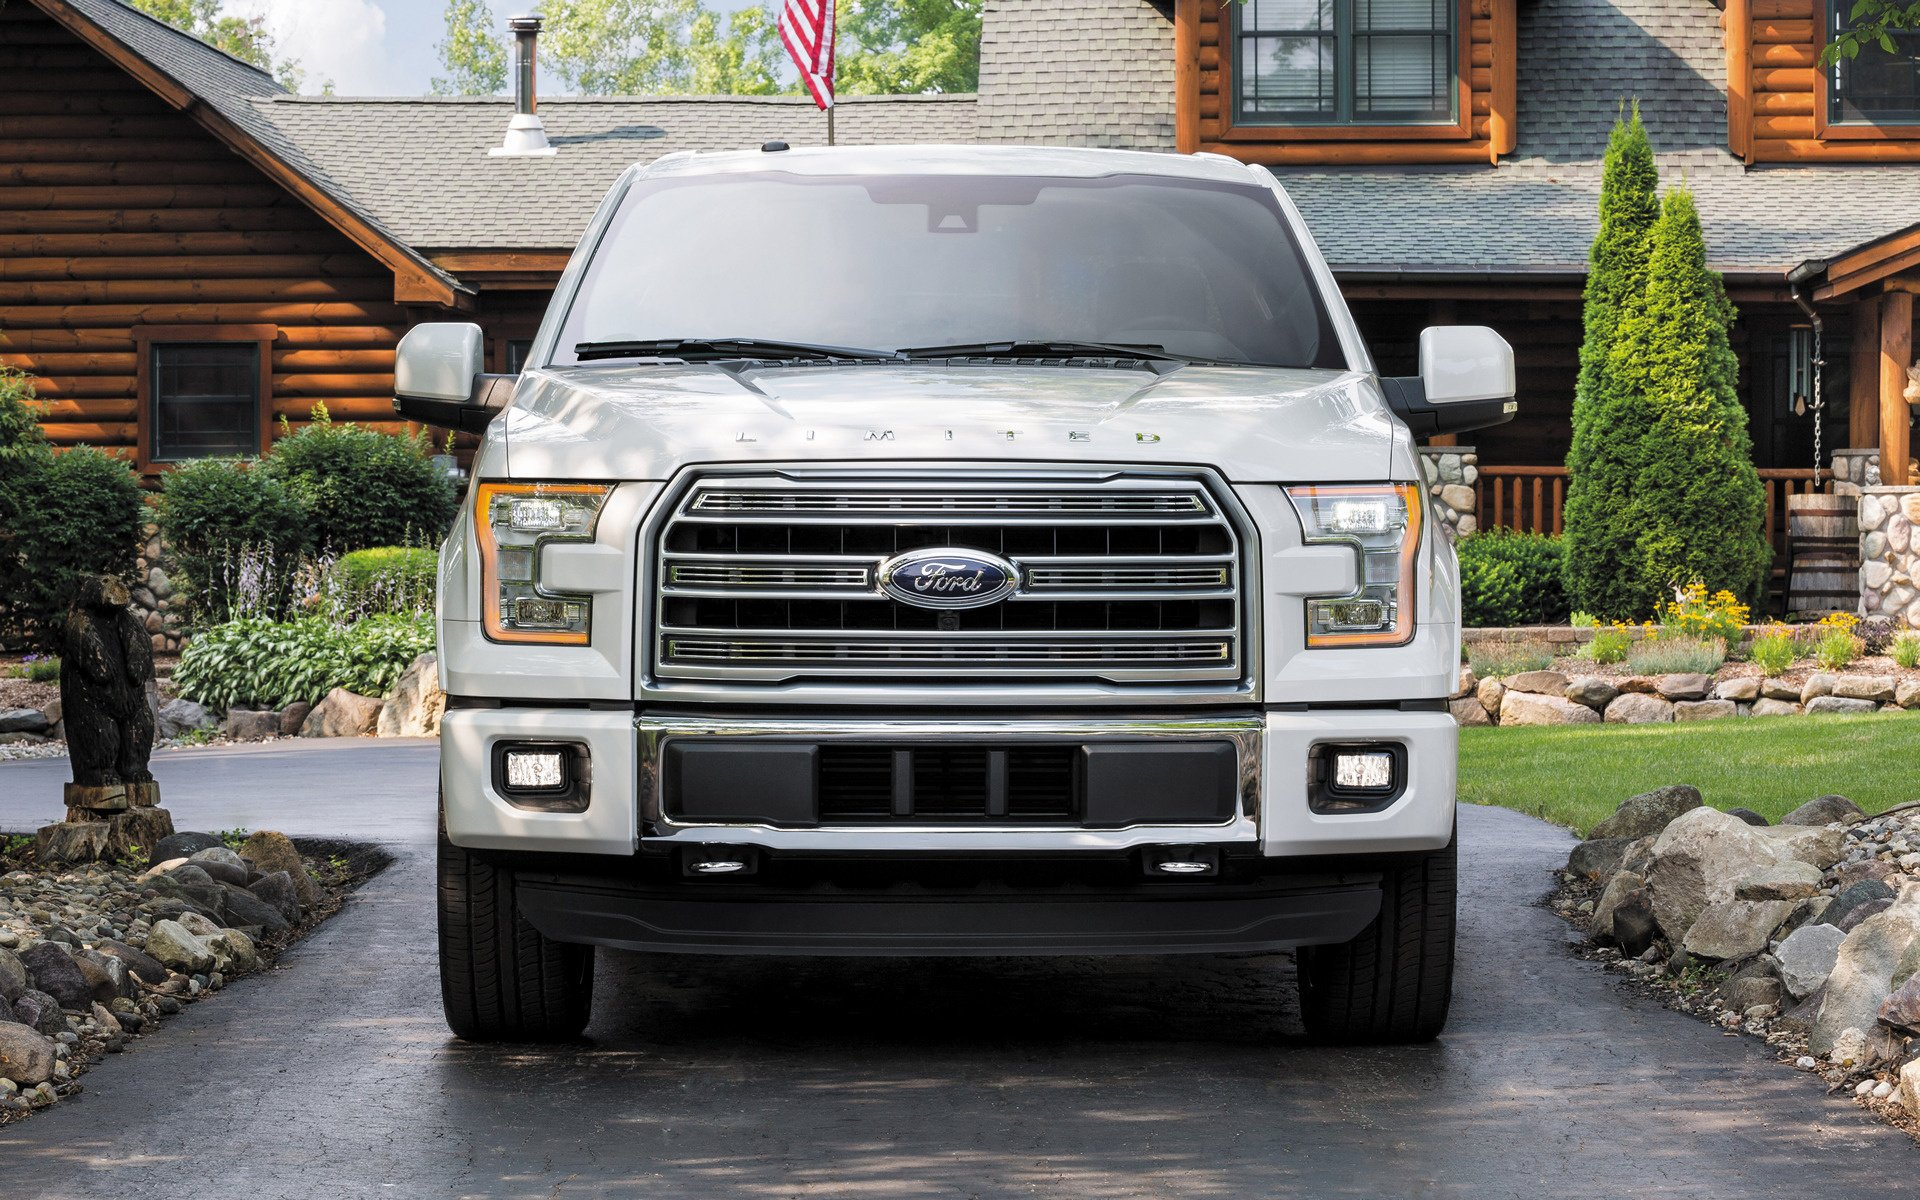 Ford F 150 Limited SuperCrew 2016 Wallpapers and HD Images 1920x1200